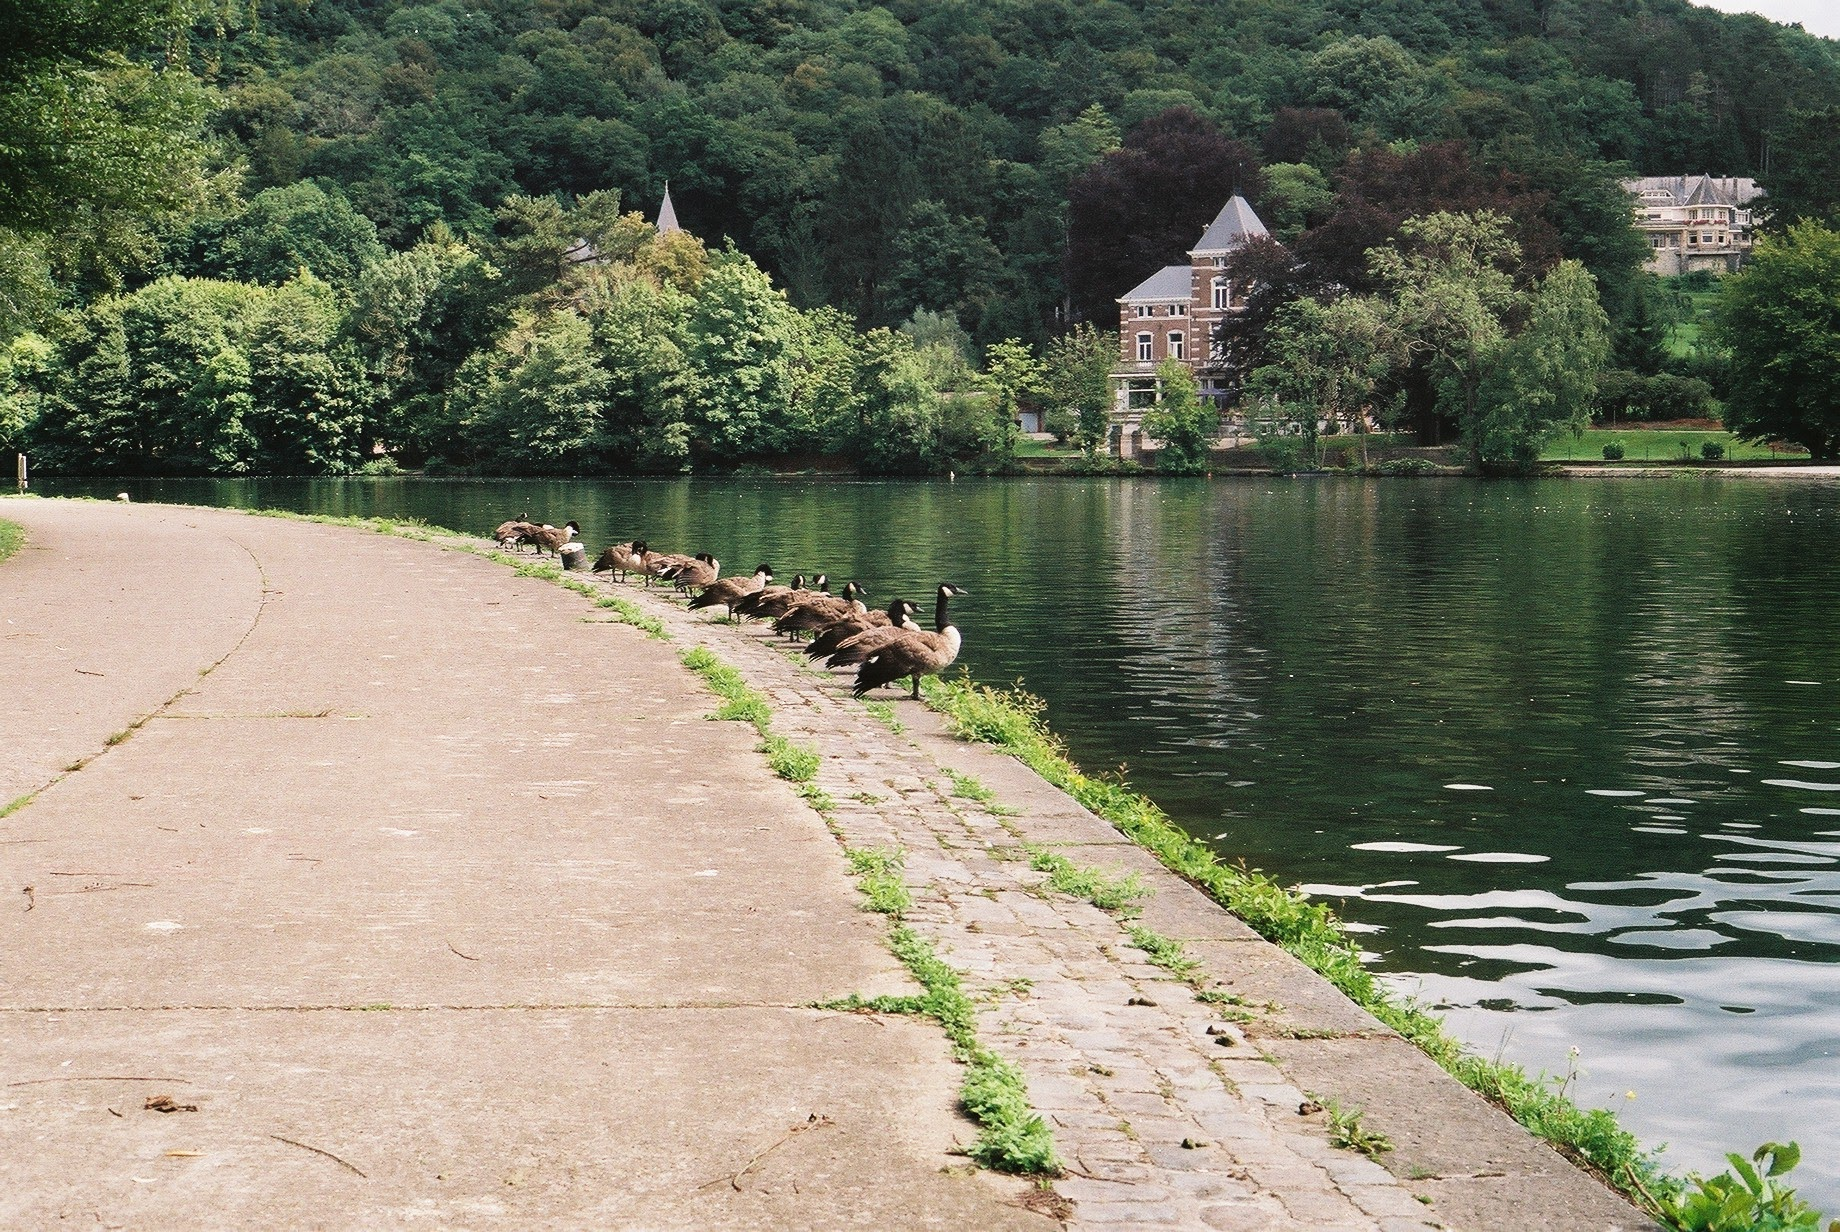 brussels, ducks, photography blog, travel blog, canon, canon ae-1, film blog, film photography, bicycle touring apocalypse, 35mm, bicycle touring, bikepacking, Canon, Canon ae-1, film camera, 35mm, no filter, travel, bicycle touring, bikepacking, travel, travel blog, leica